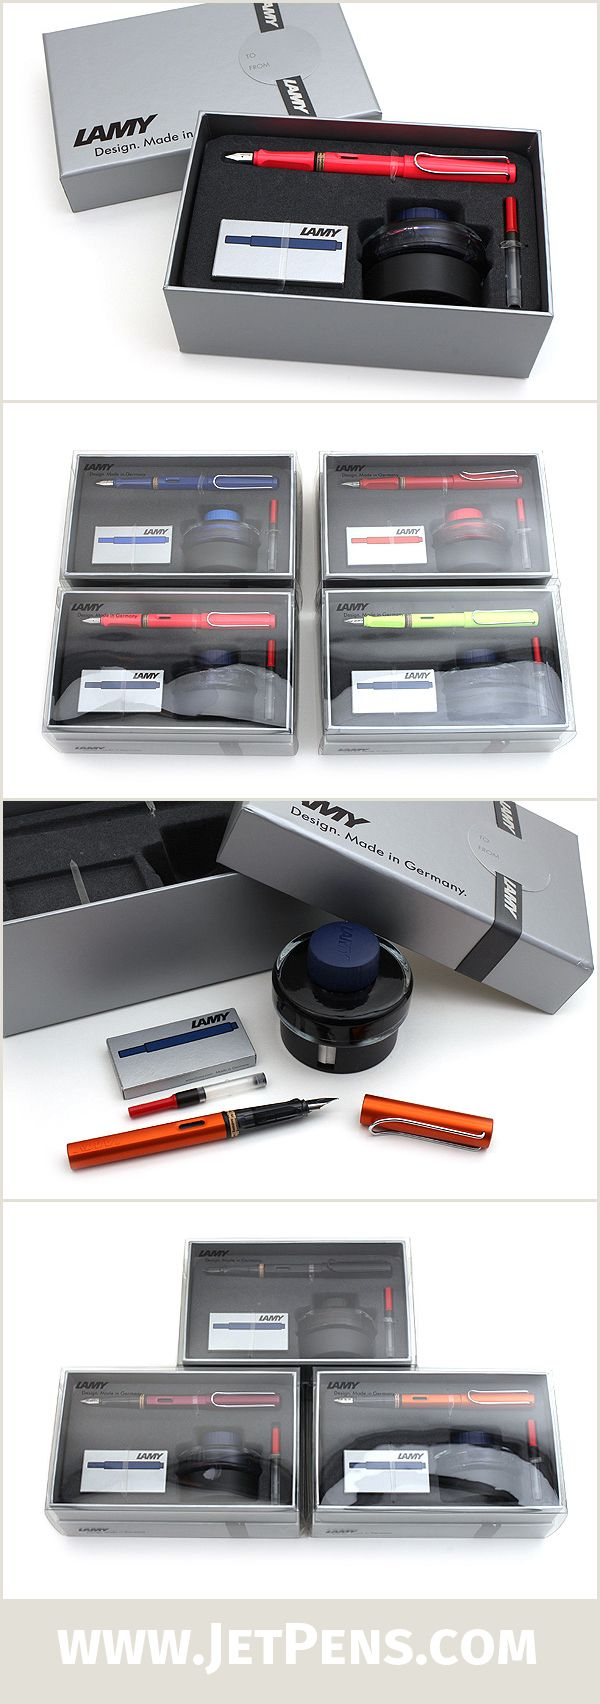 Lamy Gift Sets are great for the upcoming holidays! Each set contains a Lamy Safari, Vista, or Al-Star fountain pen, plus bottled ink, a pack of cartridges, and a converter.